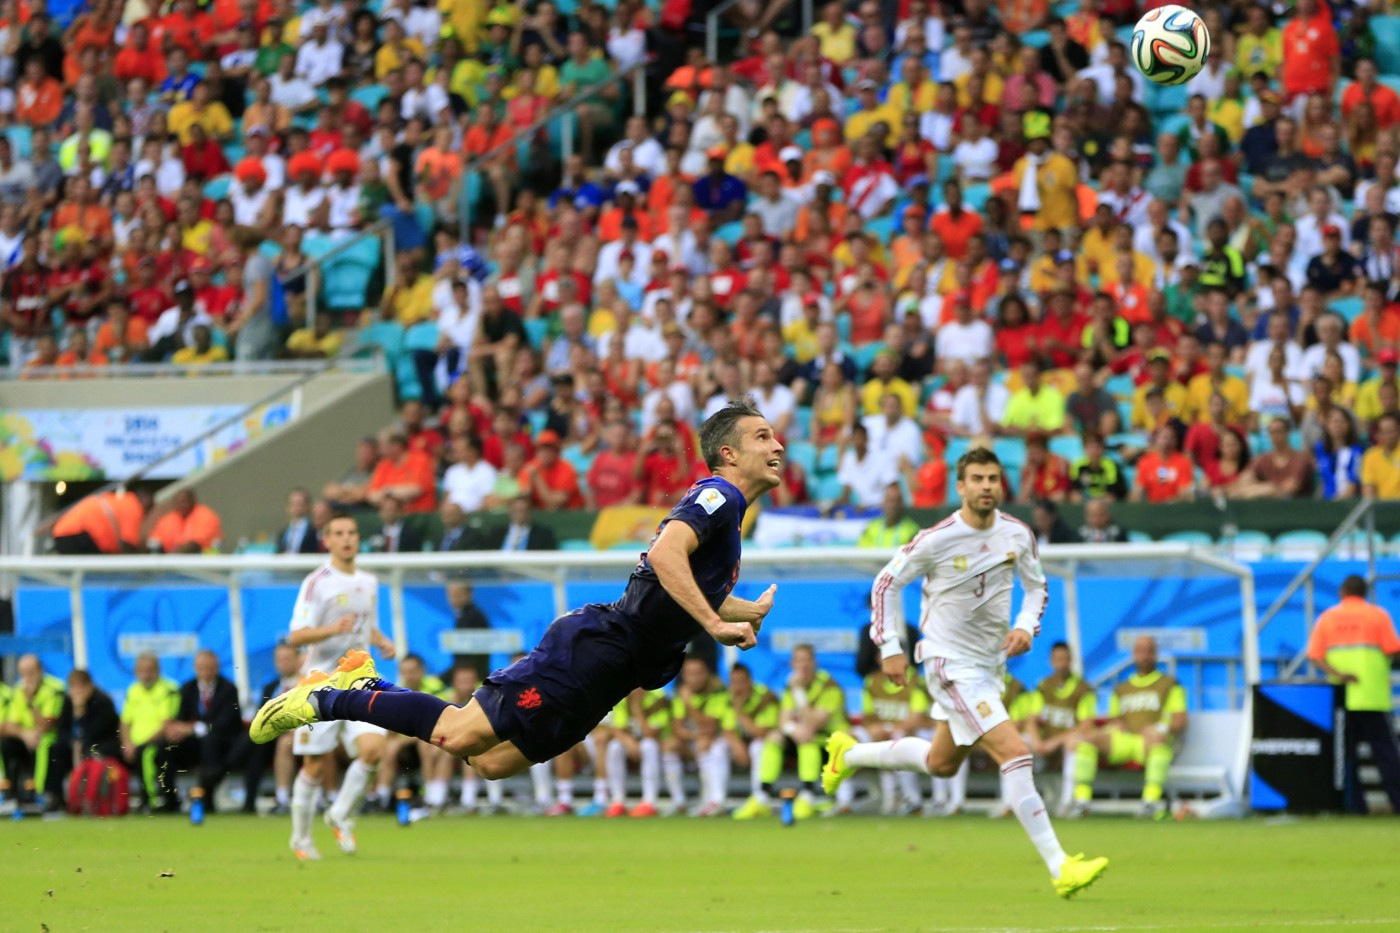 Netherlands' Robin van Persie scores a goal during the group B World Cup soccer match between Spain and the Netherlands. (AP Photo/Bernat Armangue)